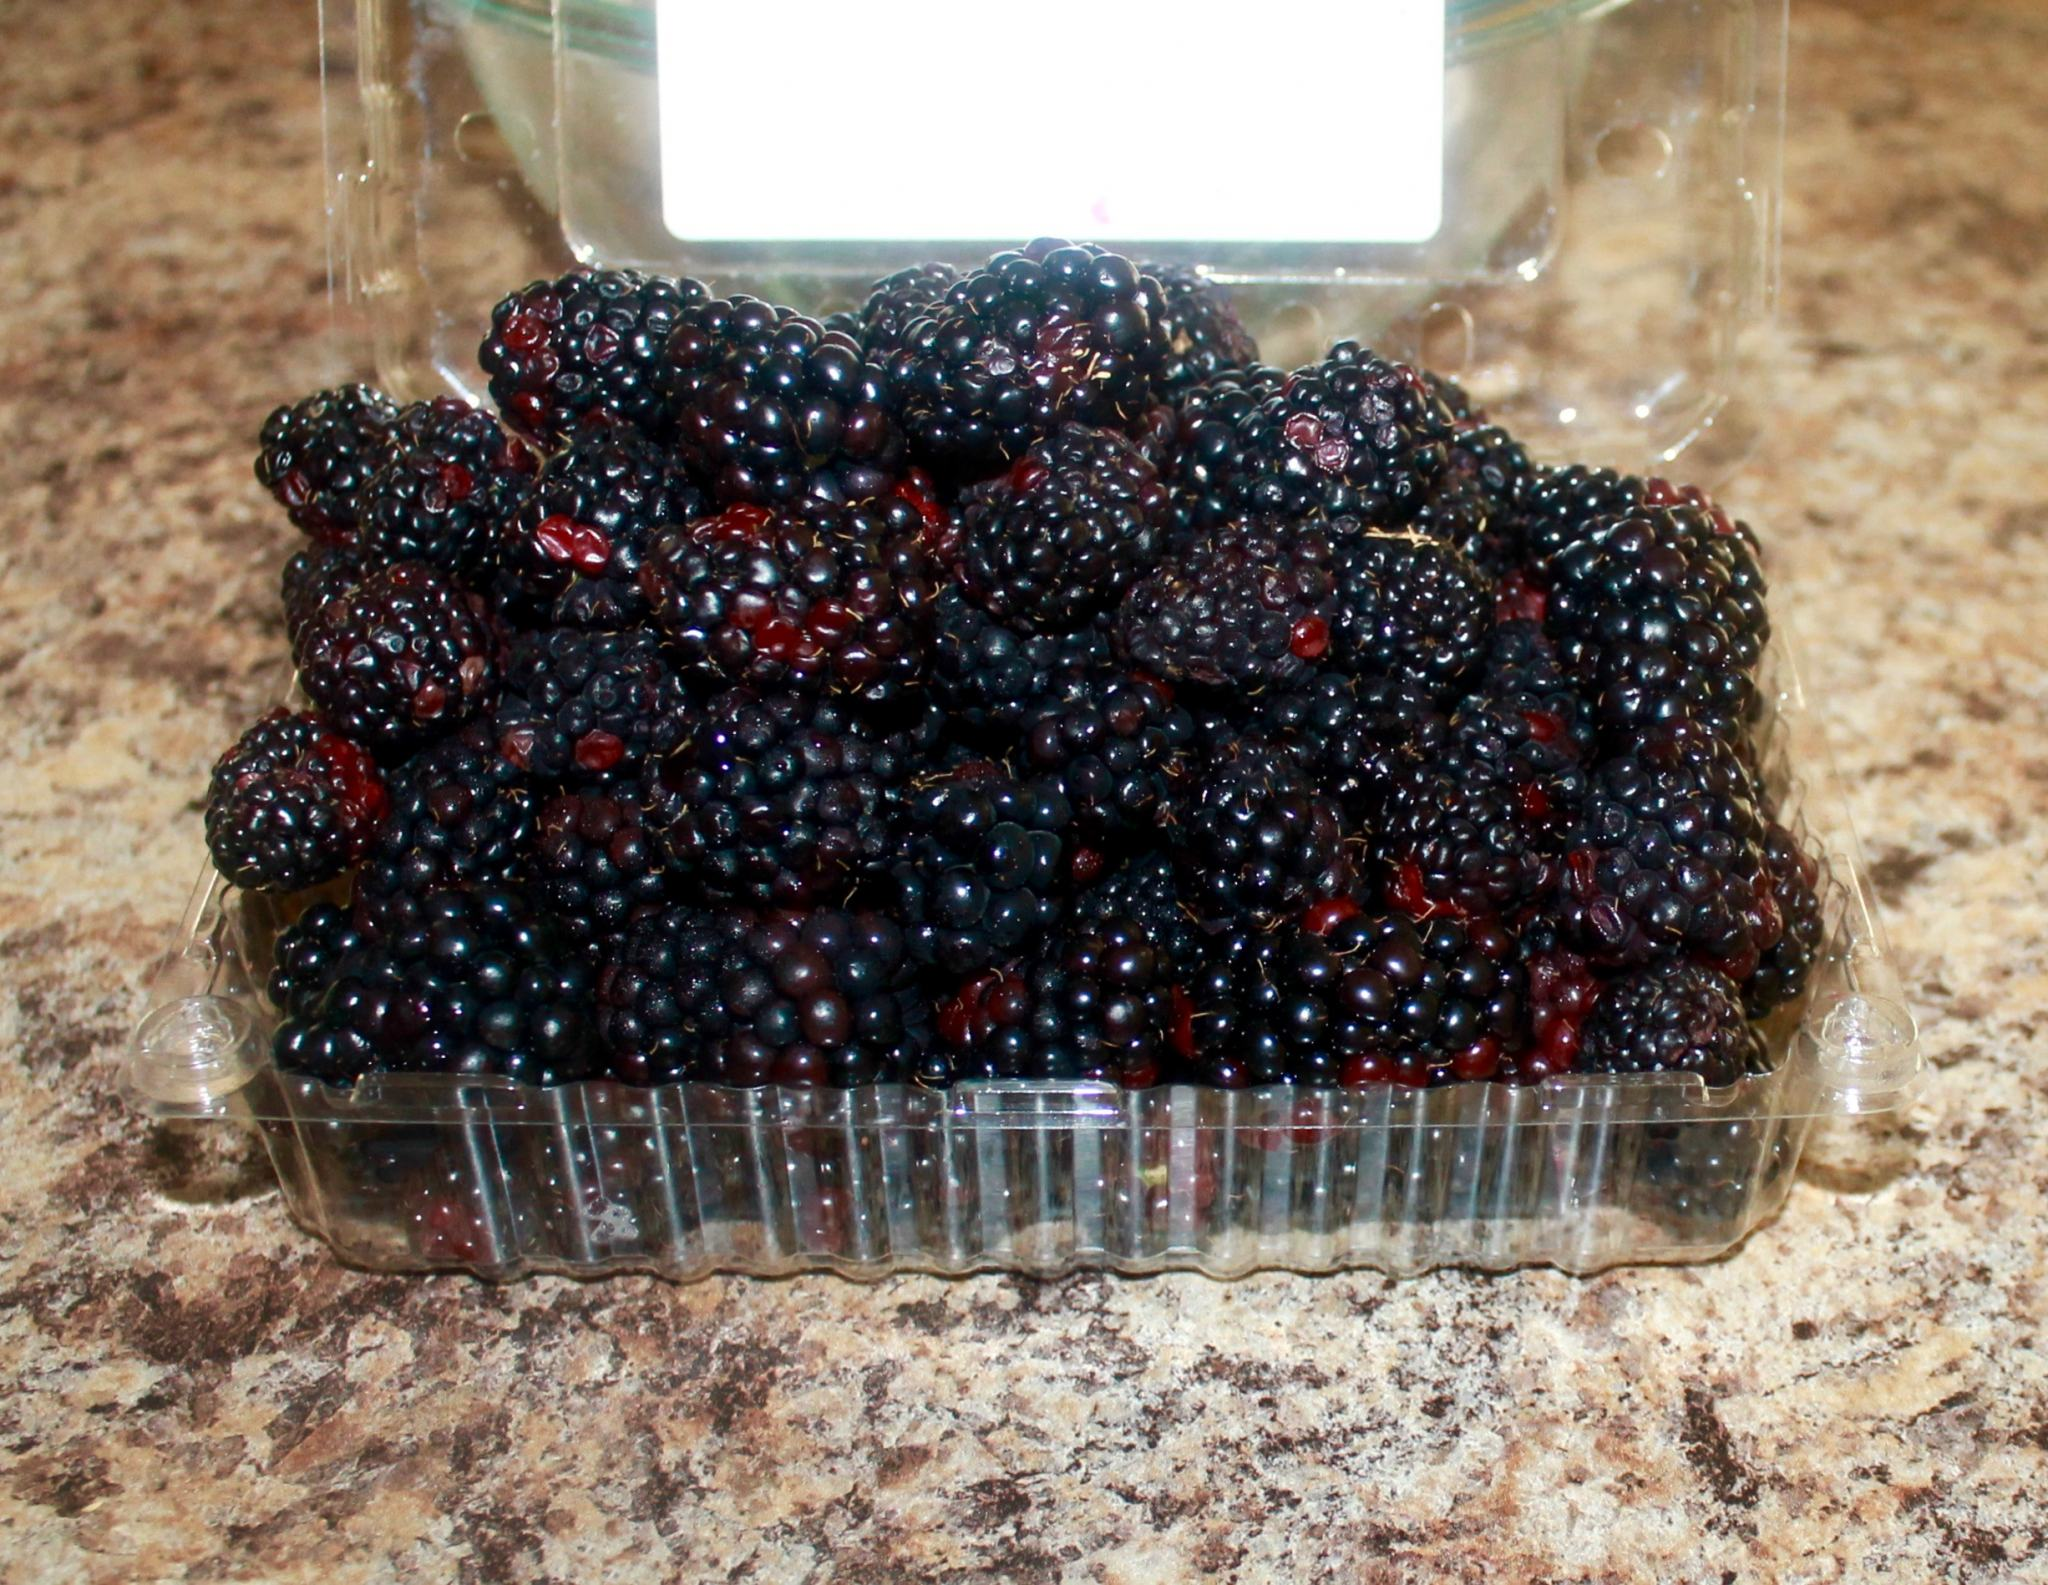 Fresh Blackberries or Frozen Blackberries for Blackberry Cobbler recipe